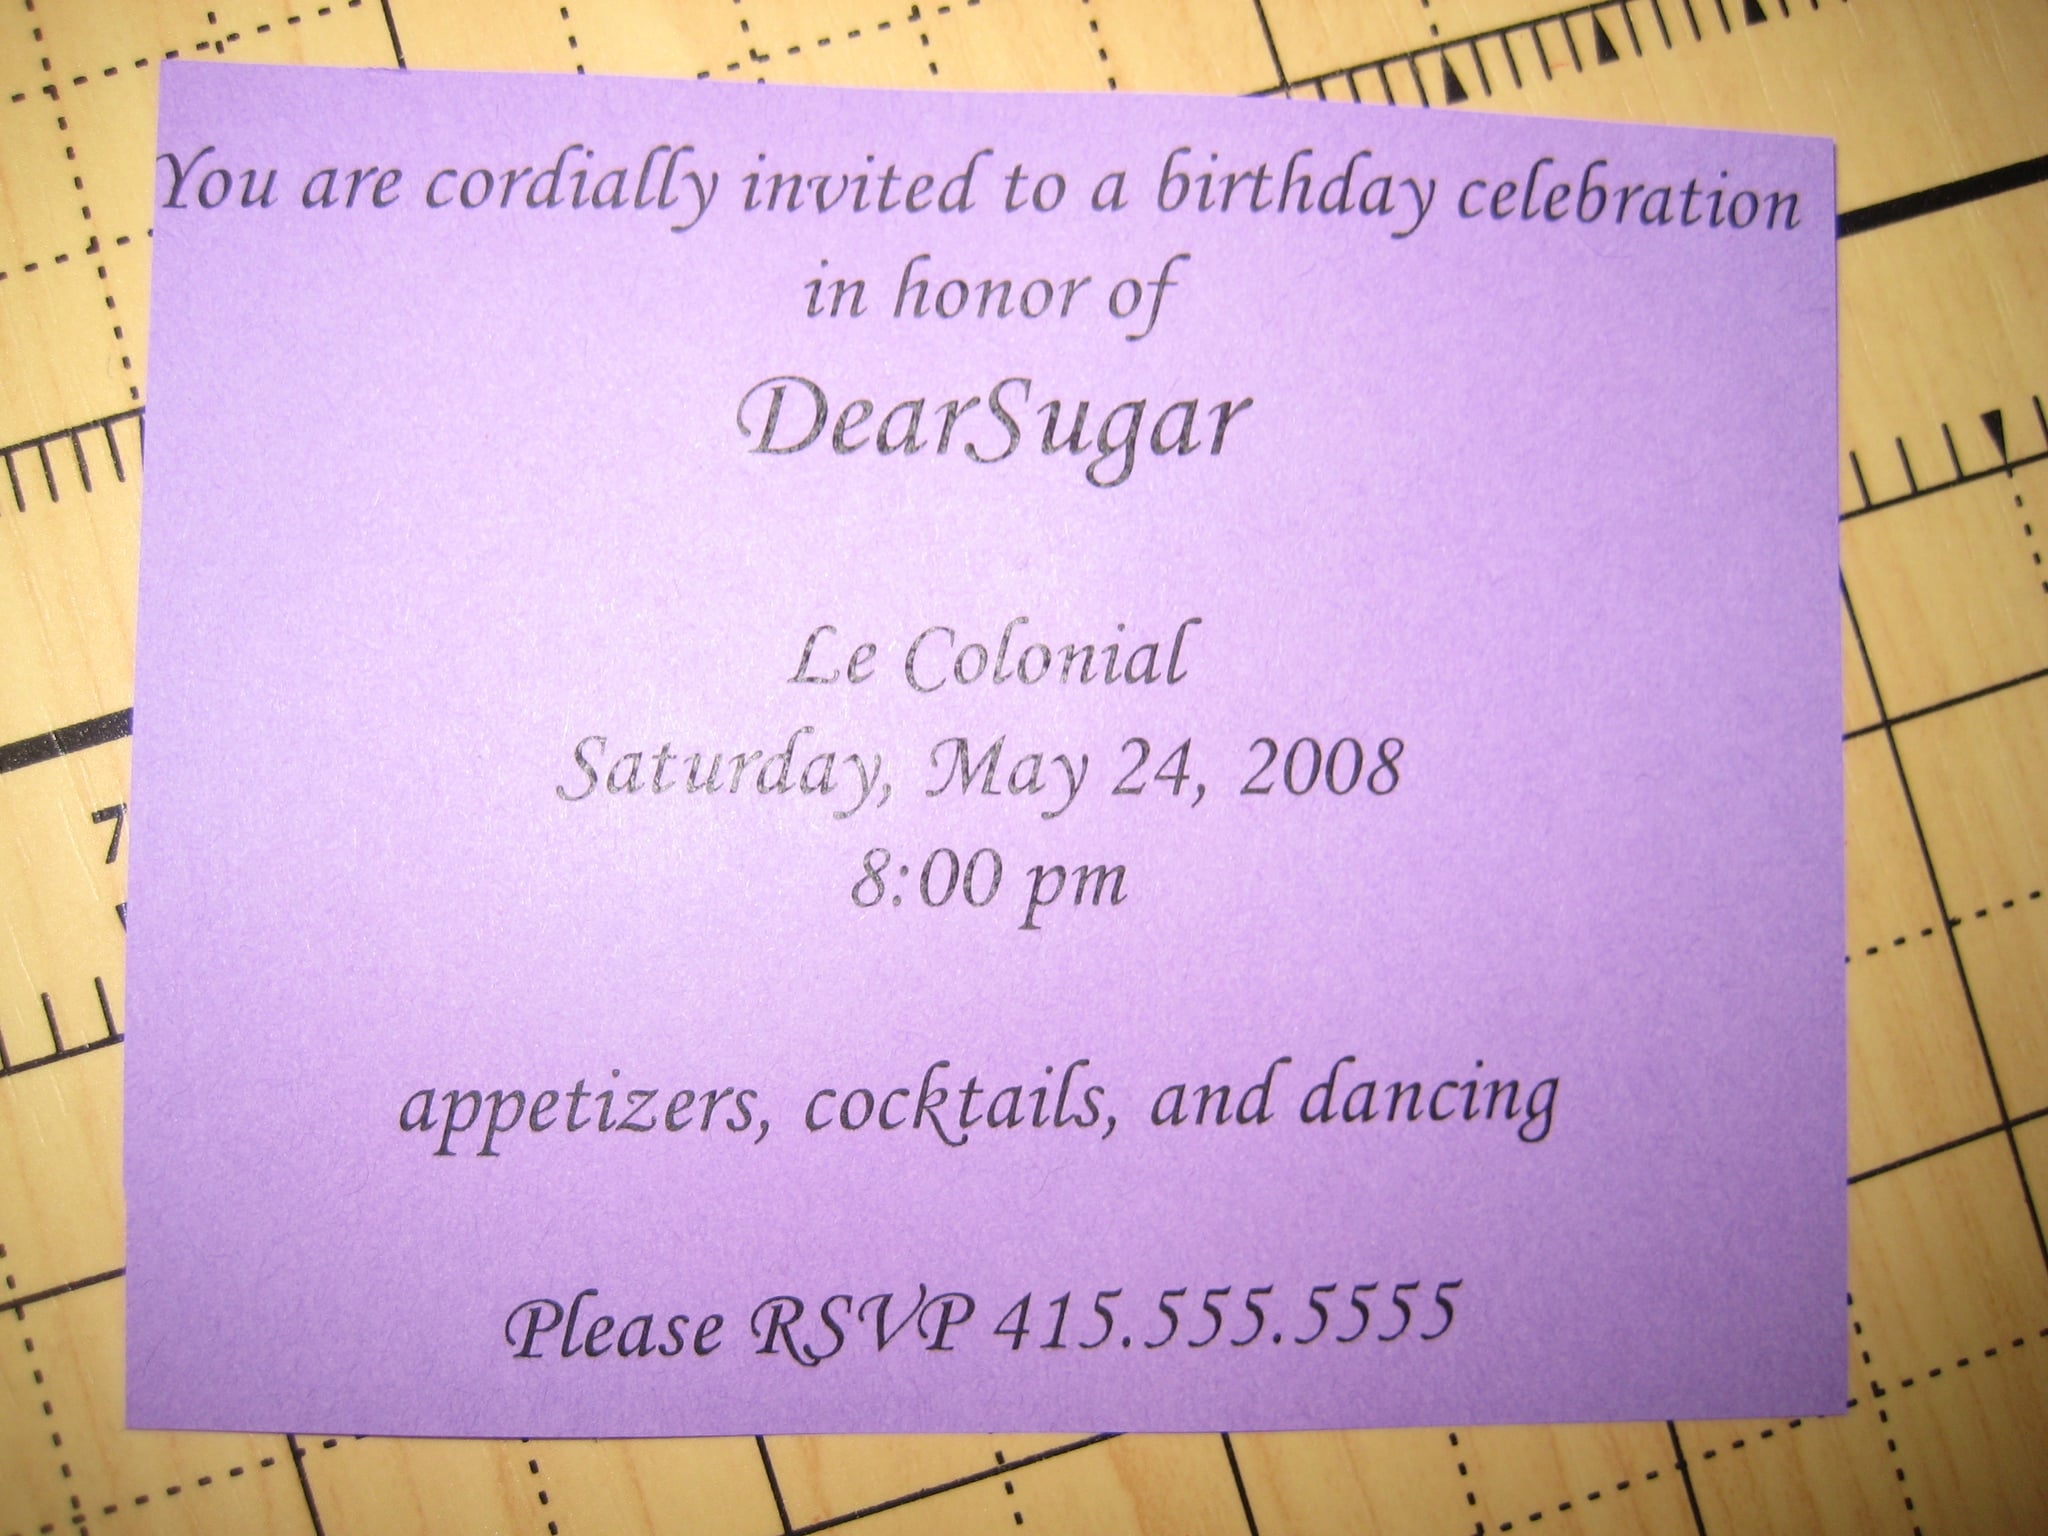 You Are Cordially Invited To My Birthday Party Image collections